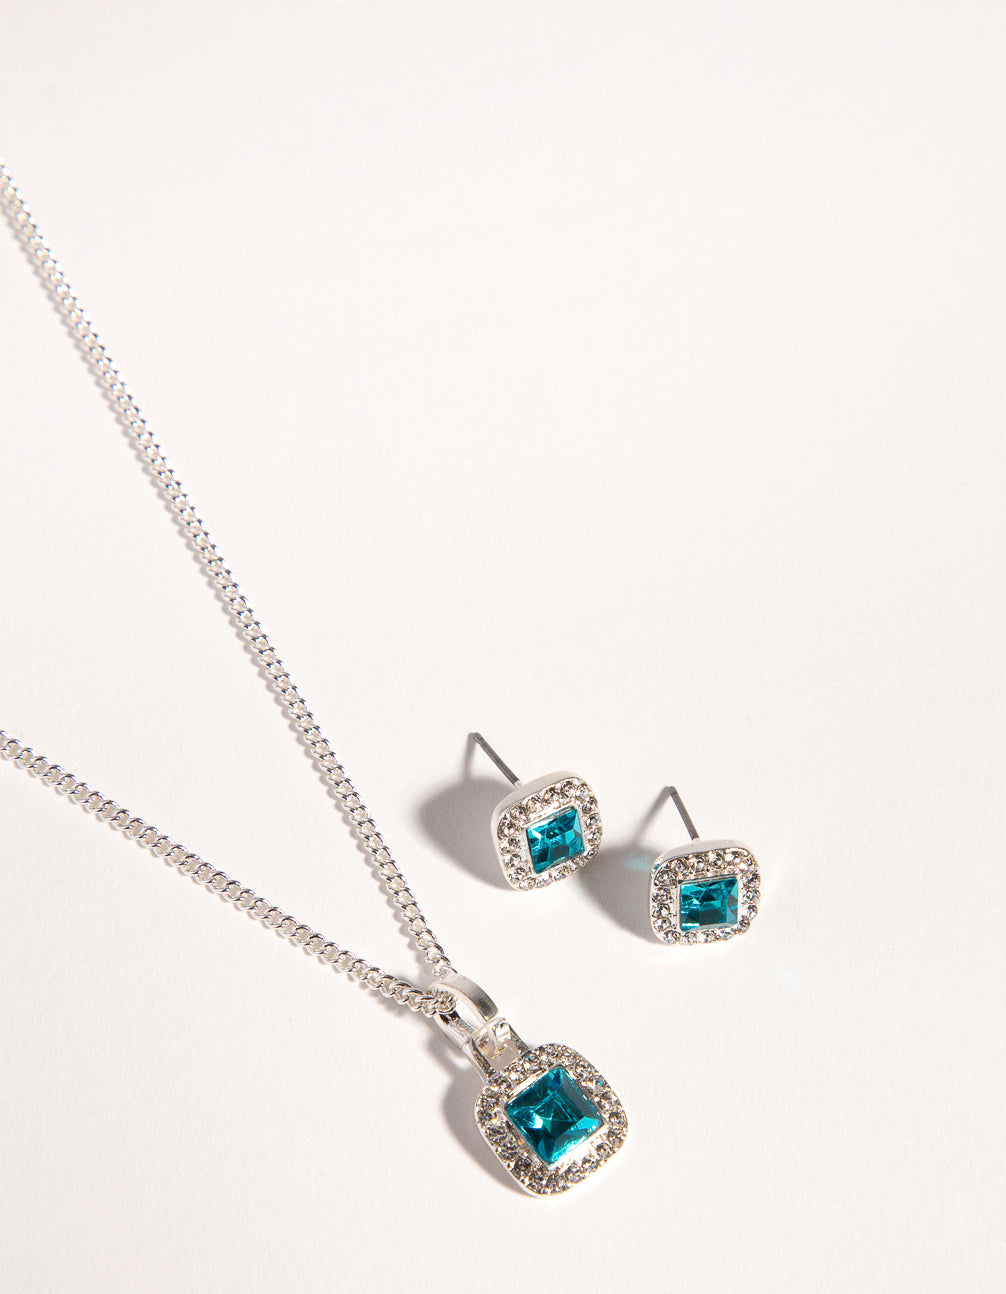 Silver Square Cut Diamante Necklace and Earrings